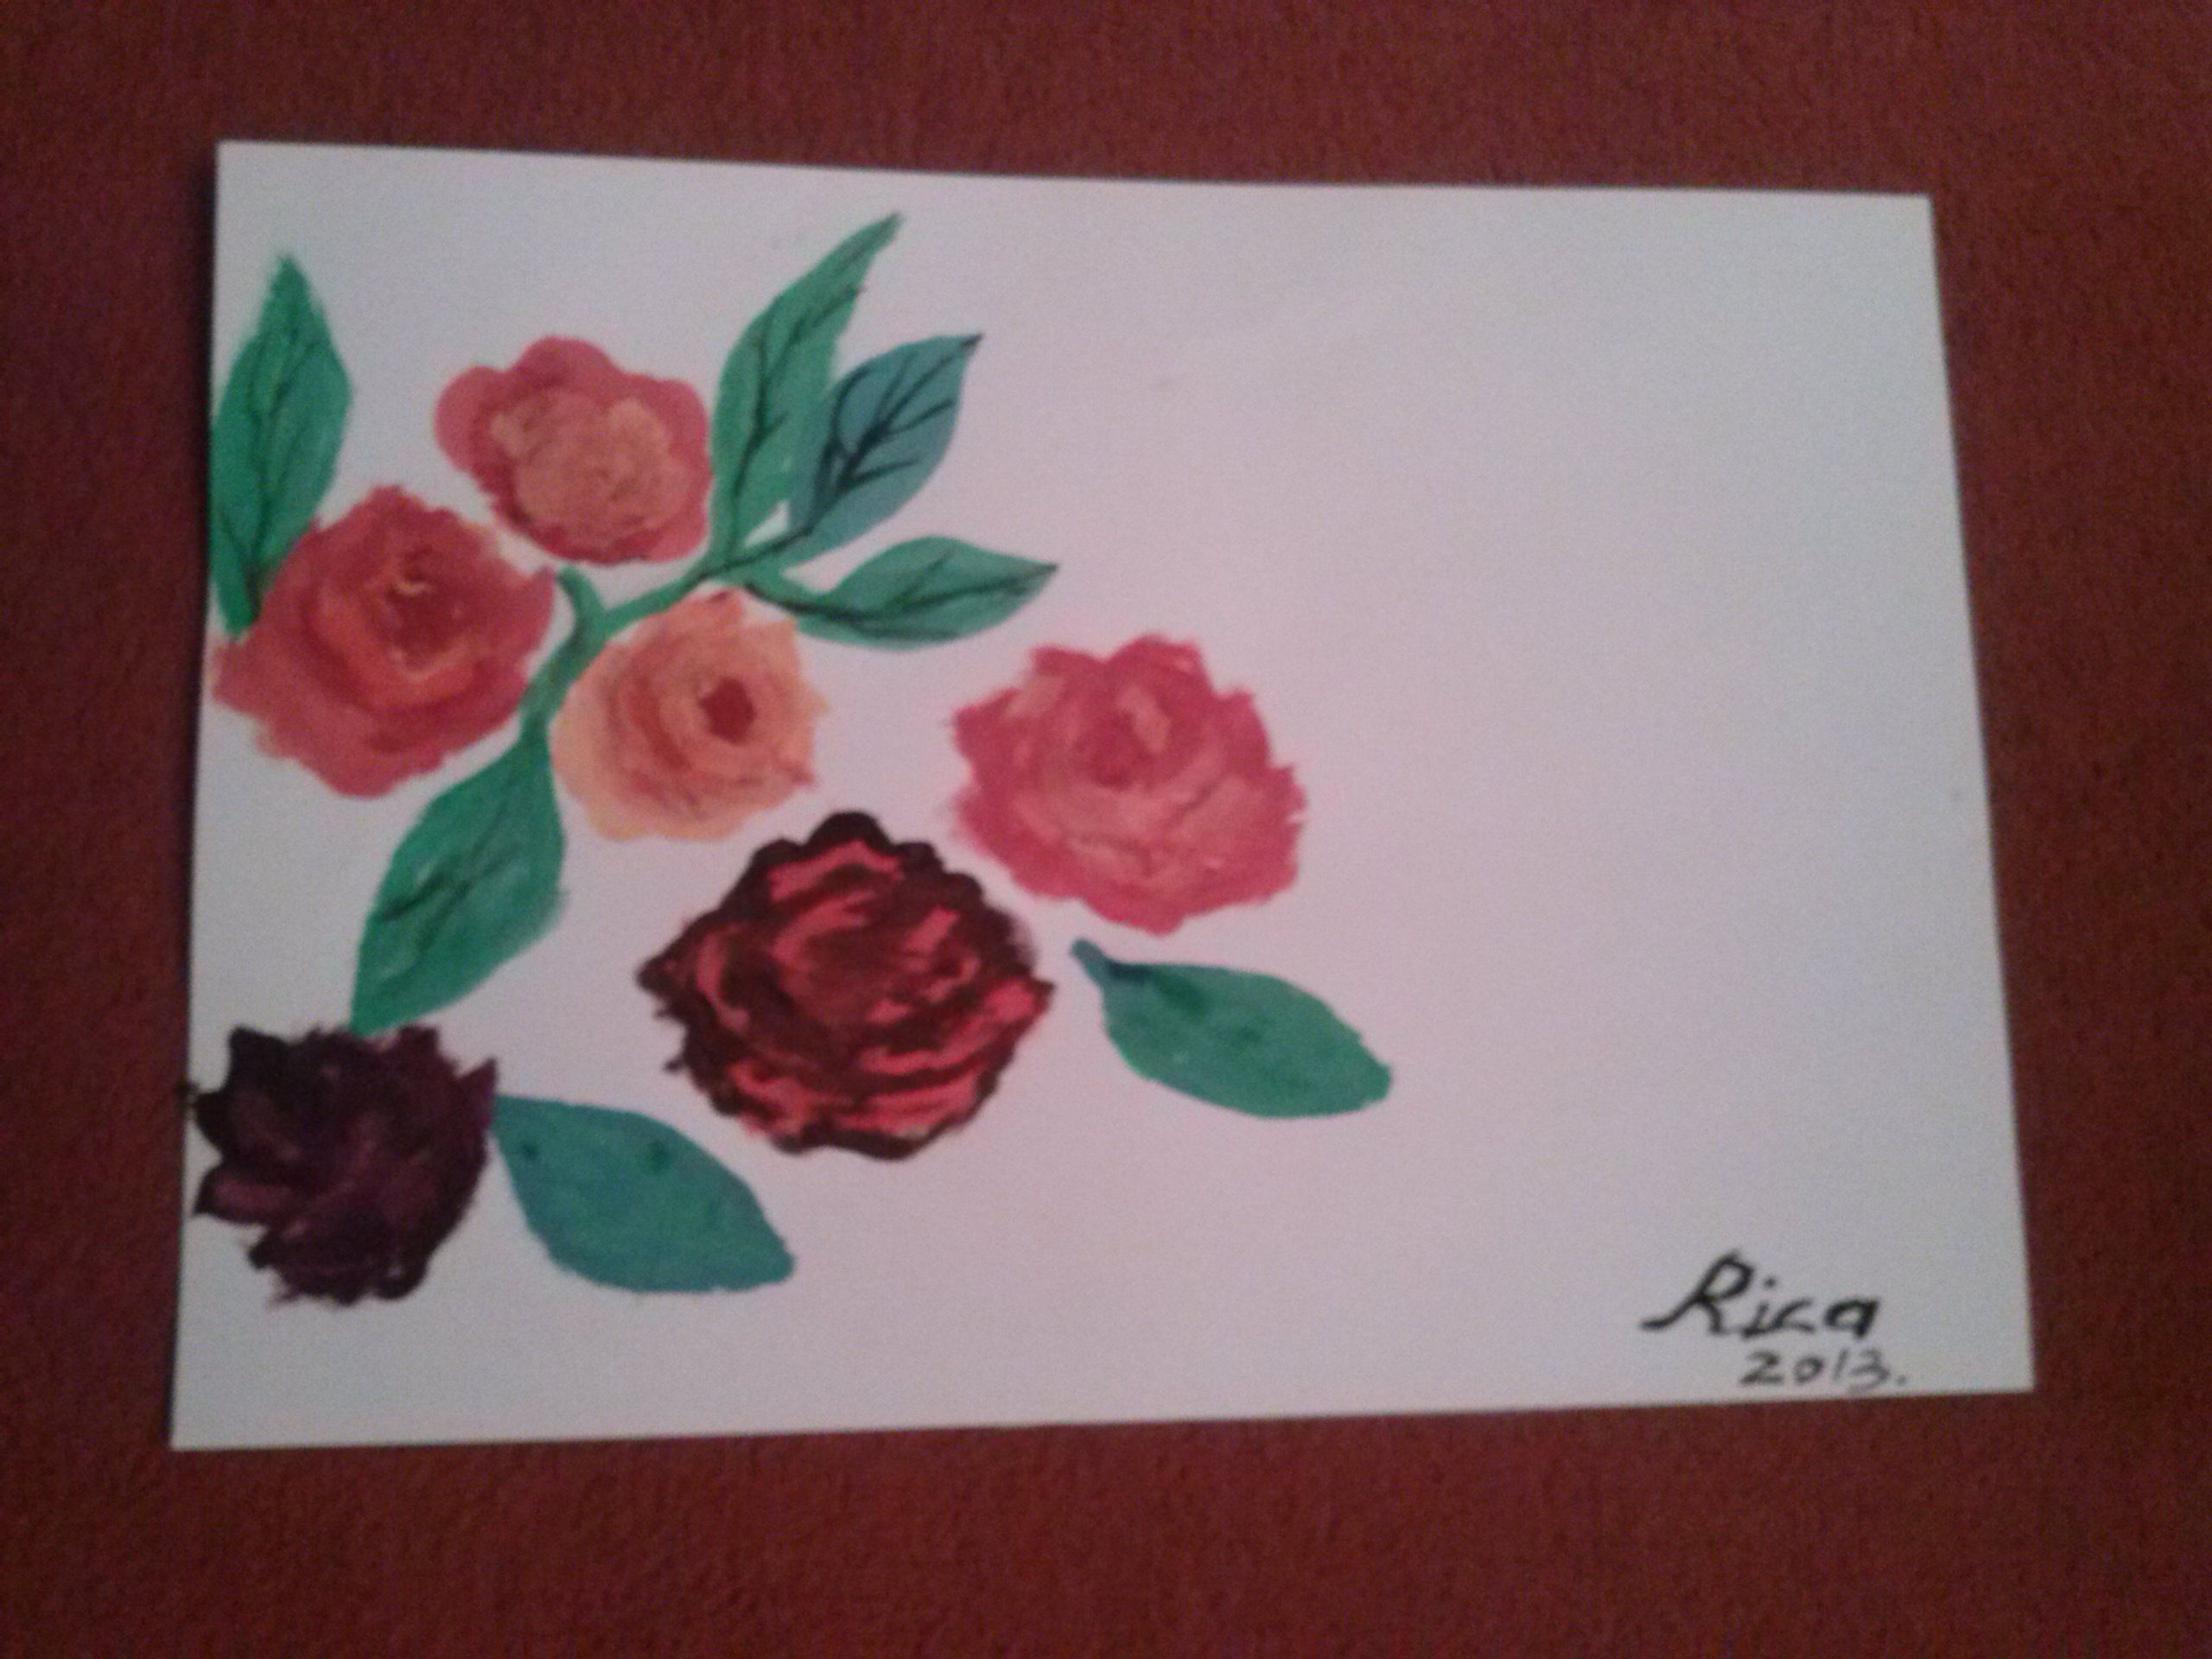 Roses / by Rica